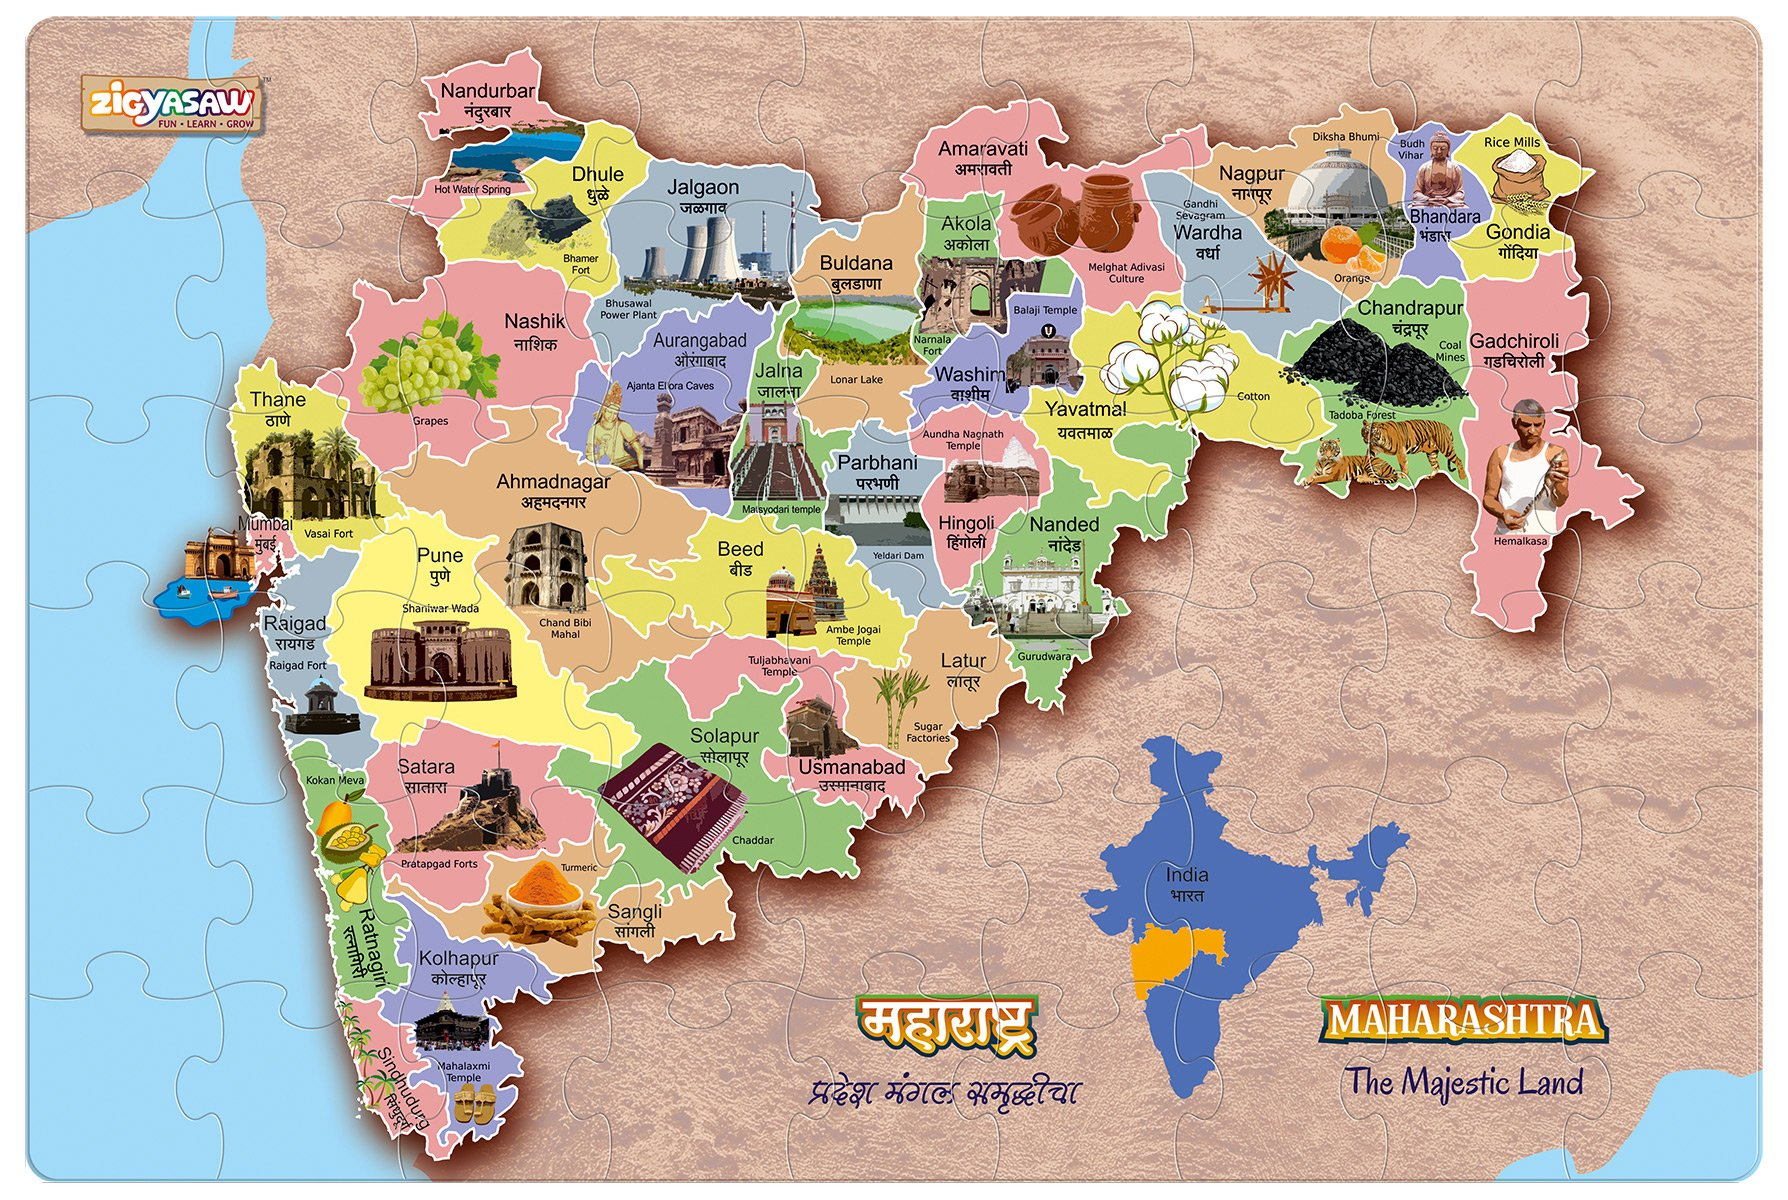 """ZiGYASAW Maharashtra Map Giant Jumbo Jigsaw Floor Puzzle (Wipe-Clean Surface, Teaches Geography, 54 Pieces, 24"""" L x 36"""" W, Great Gift for Girls and Boys - Best for 4,5,6,7,8 Year Olds and Up)"""